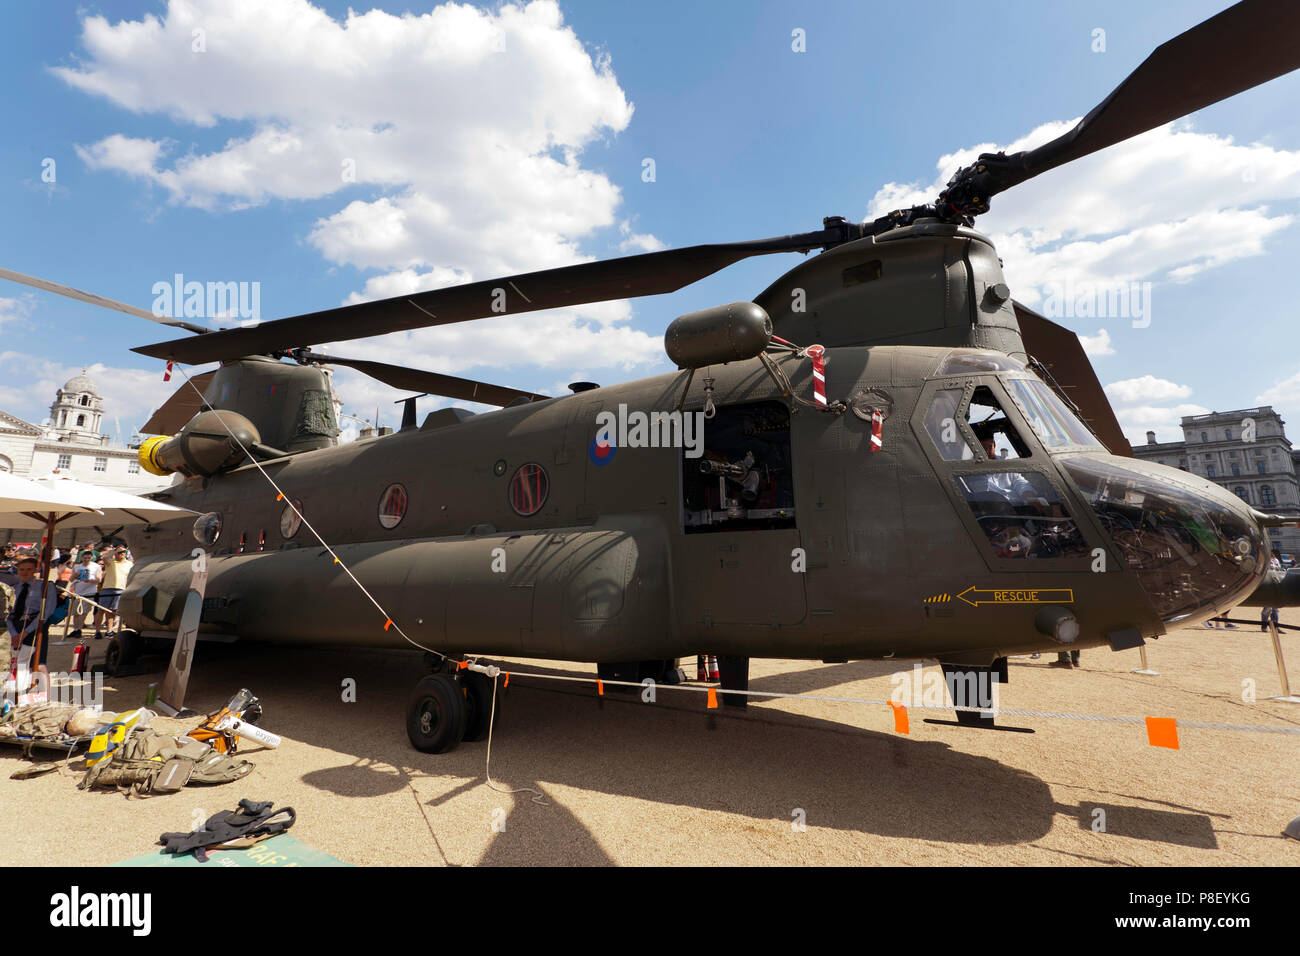 View  of a Boeing Chinook HC6A  heavy-lift helicopter, on display at Horse Guards Parade, as part of RAF 100 Centenary Celebration - Stock Image